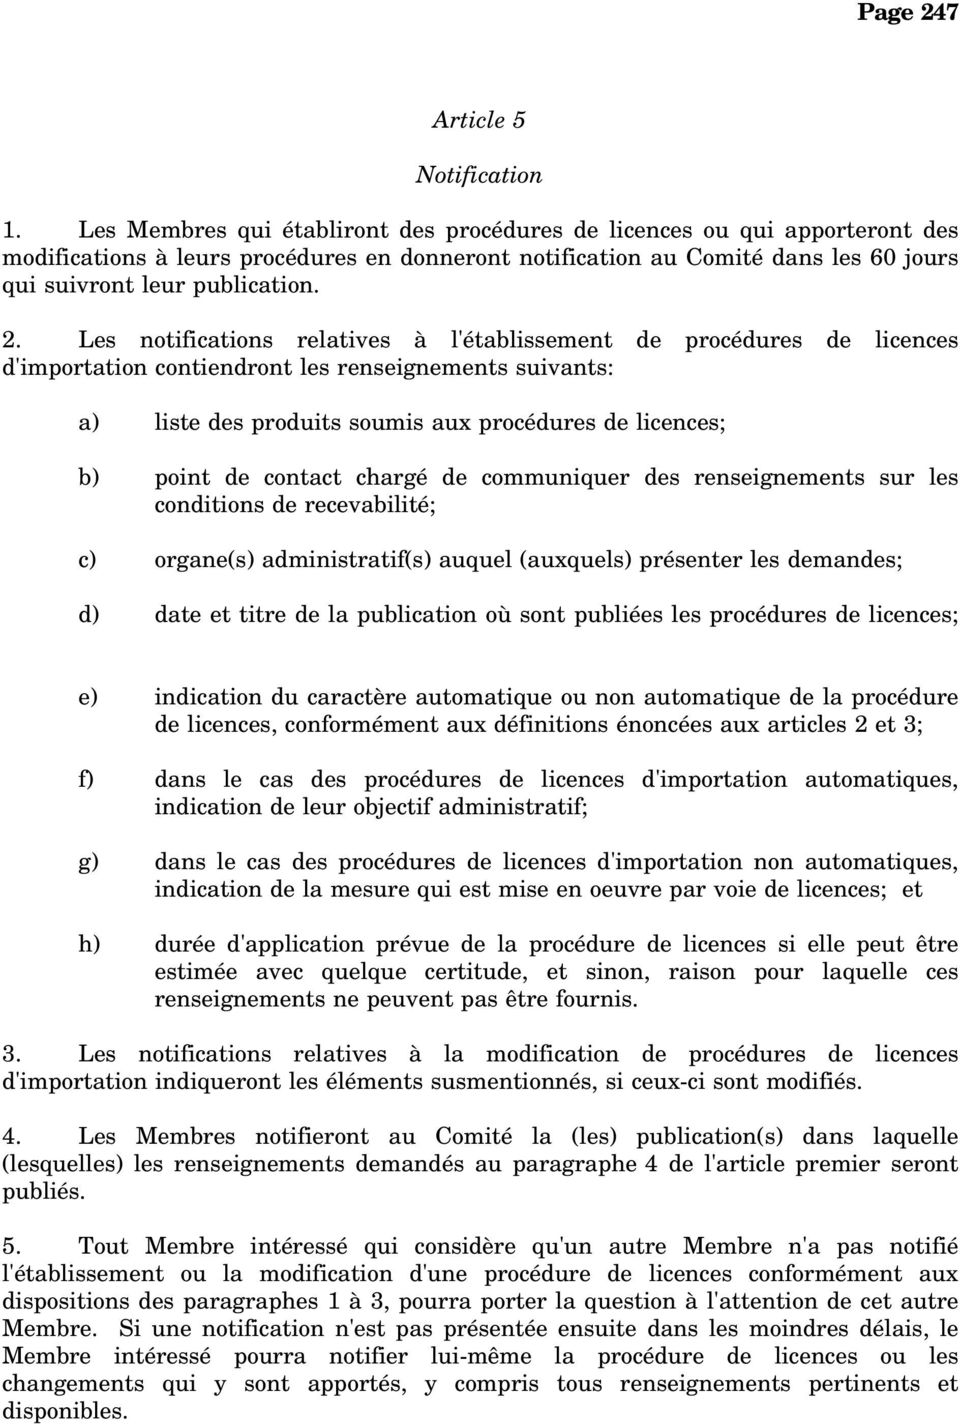 Les notifications relatives à l'établissement de procédures de licences d'importation contiendront les renseignements suivants: a) liste des produits soumis aux procédures de licences; b) point de